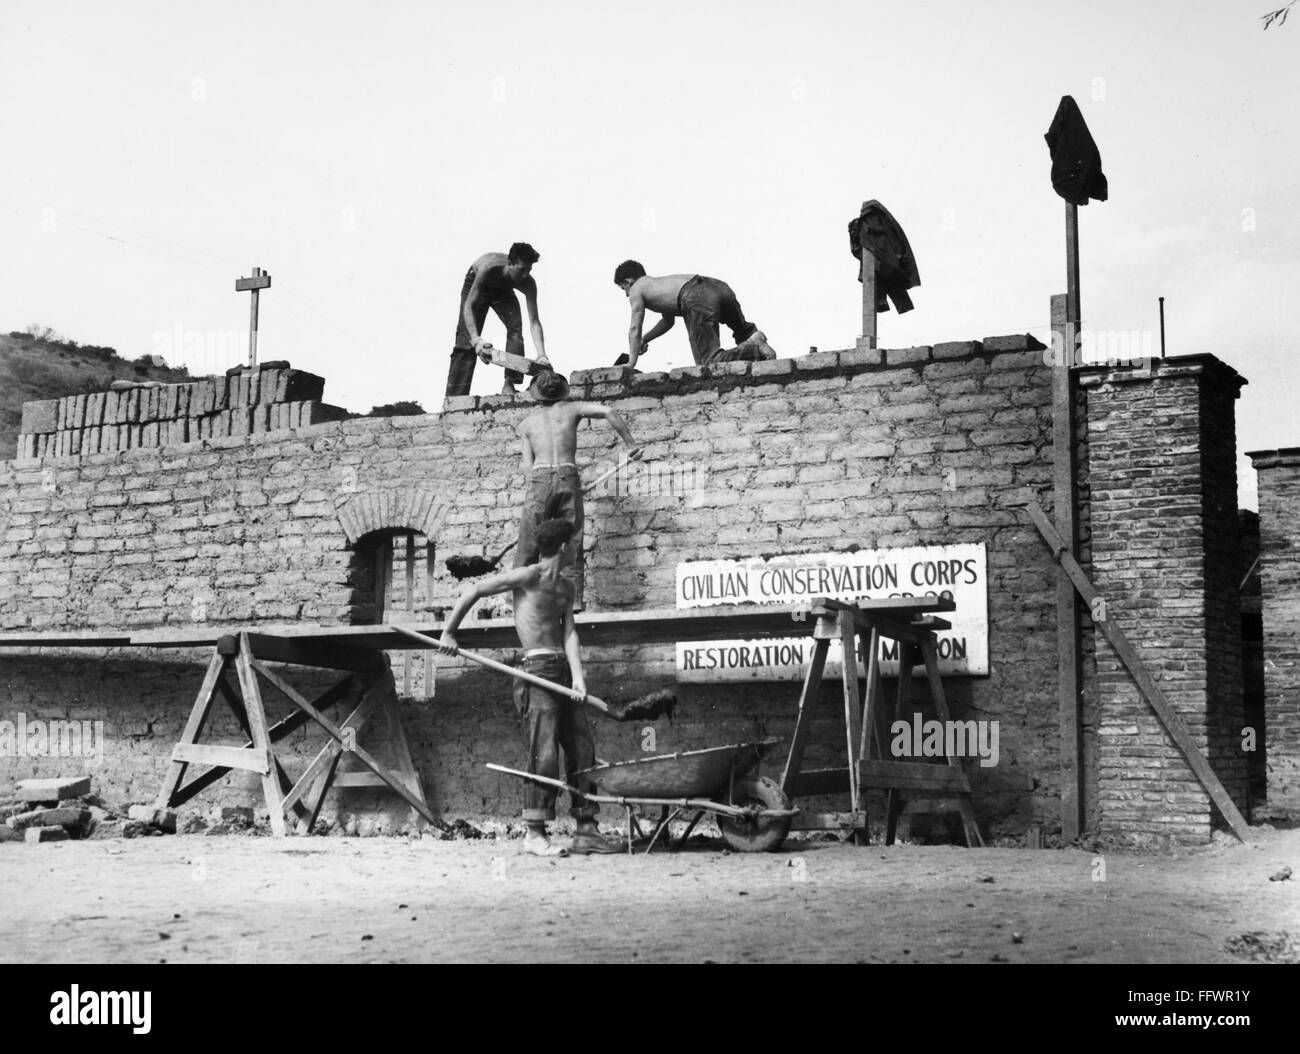 ... Corps Laying Adobe Bricks On The Walls Of A Storage Building At The  Mission Of The Immaculate Conception Near Lompoc, California, September  1938.